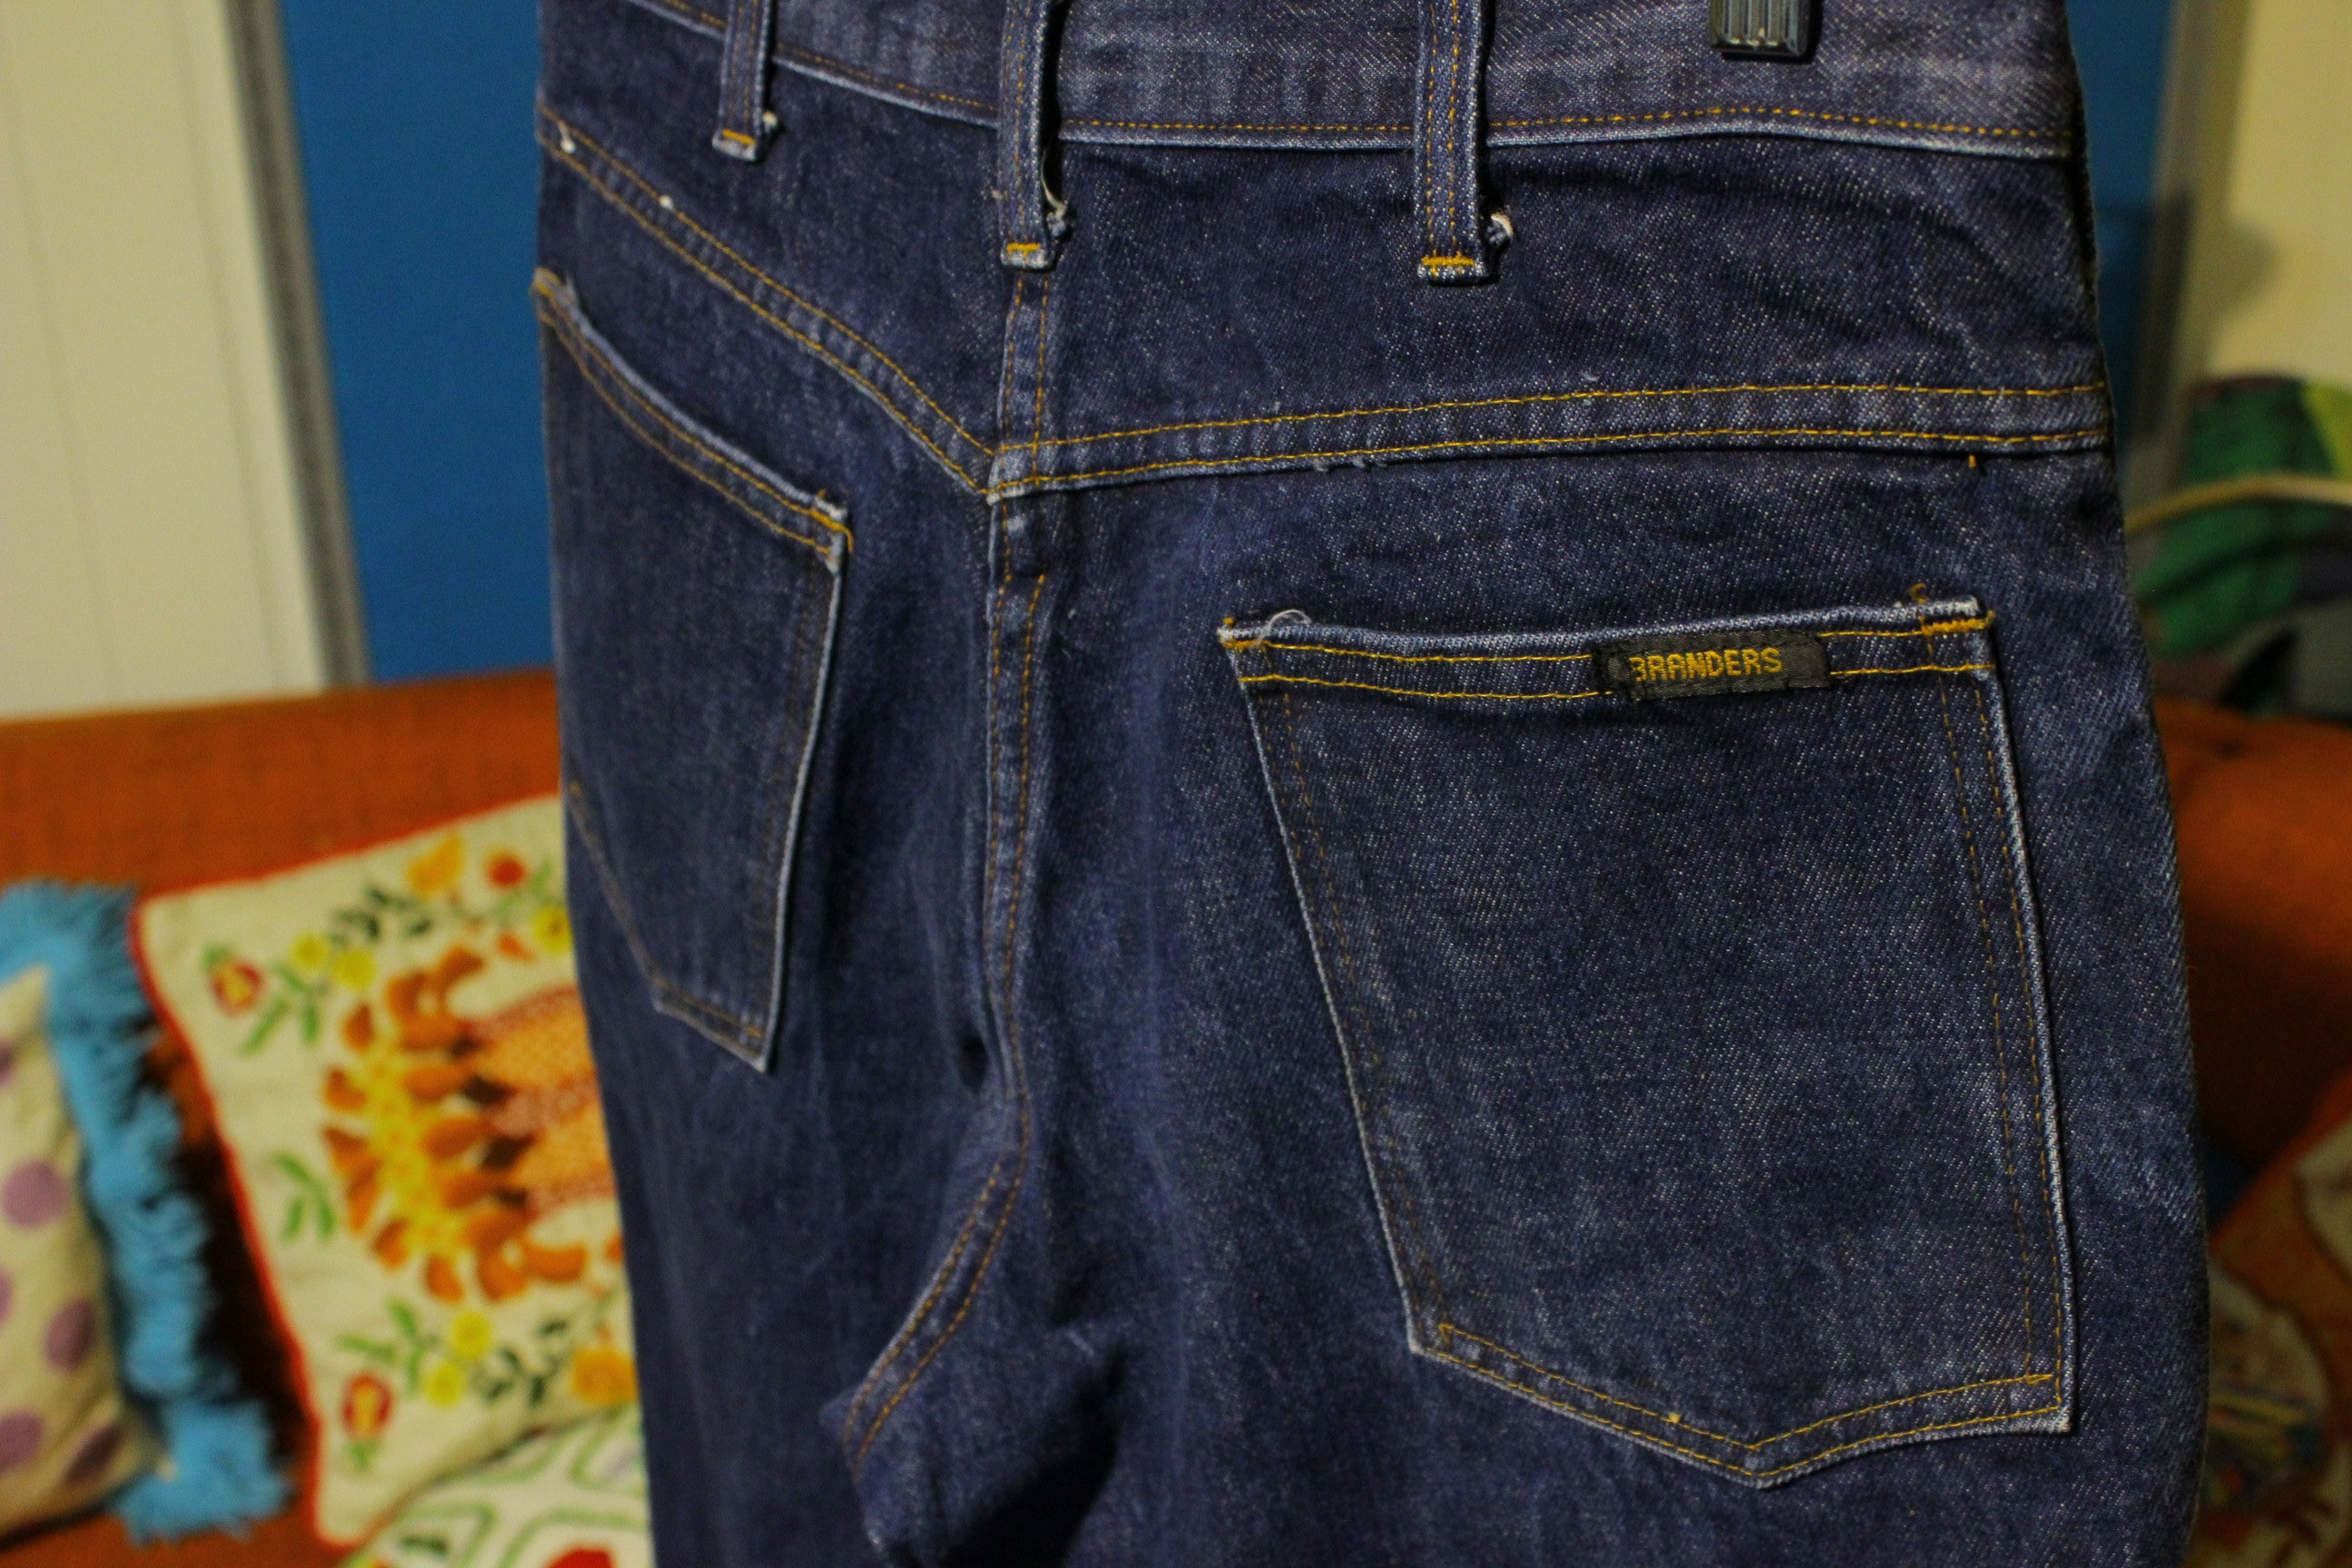 Branders Made in USA Jeans. Vintage and broke in.